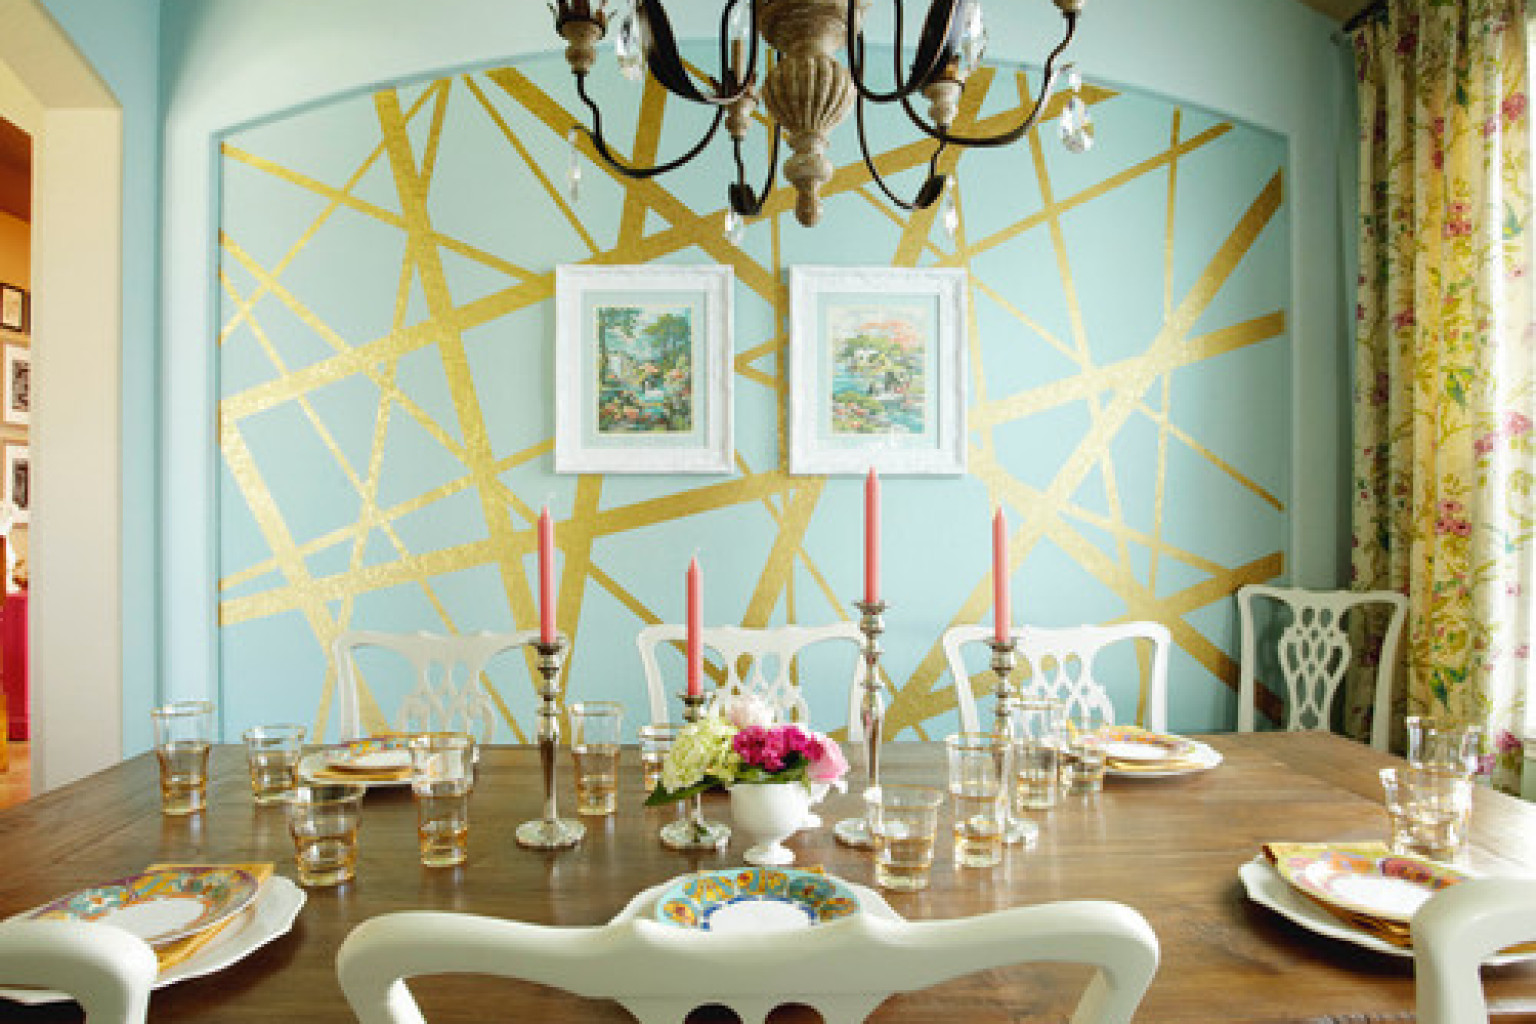 Incredible Interior Paint Ideas From Real Homes That Turn A Wall